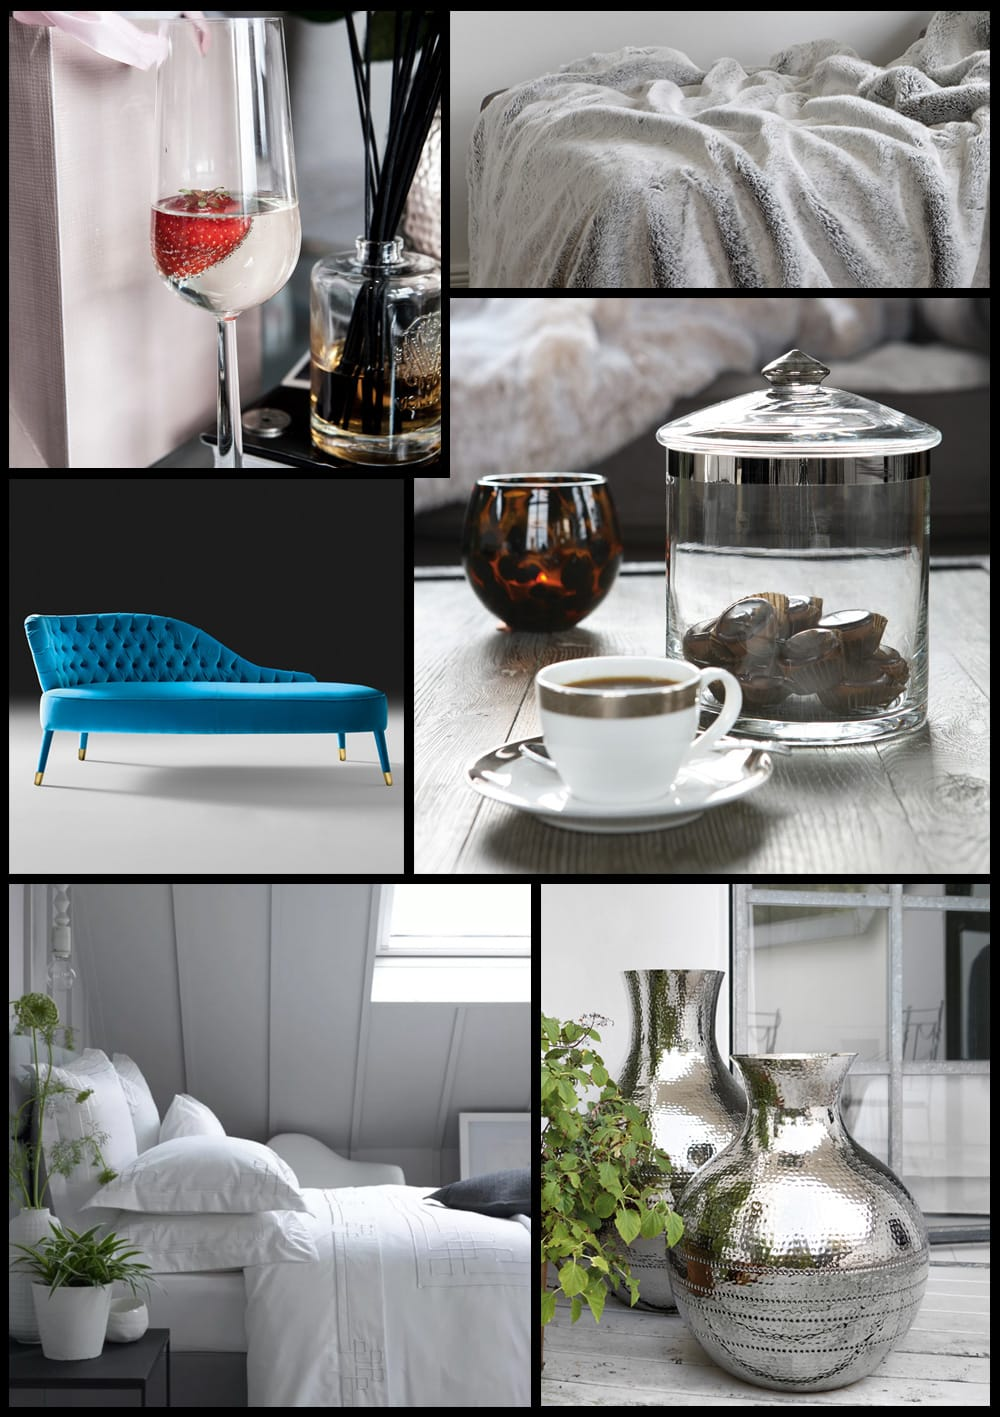 chaise longue fantasy room montage